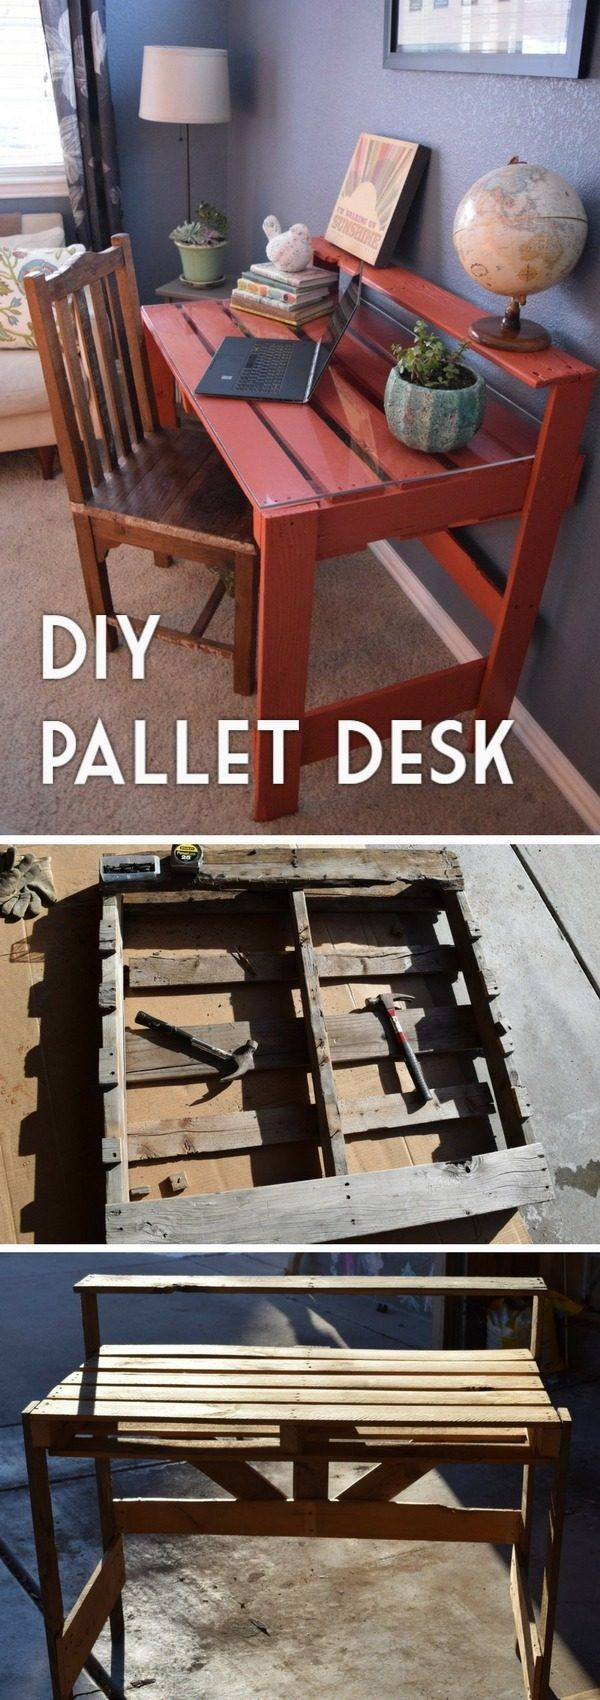 Check out the tutorial how to build a DIY pallet desk @istandarddesign